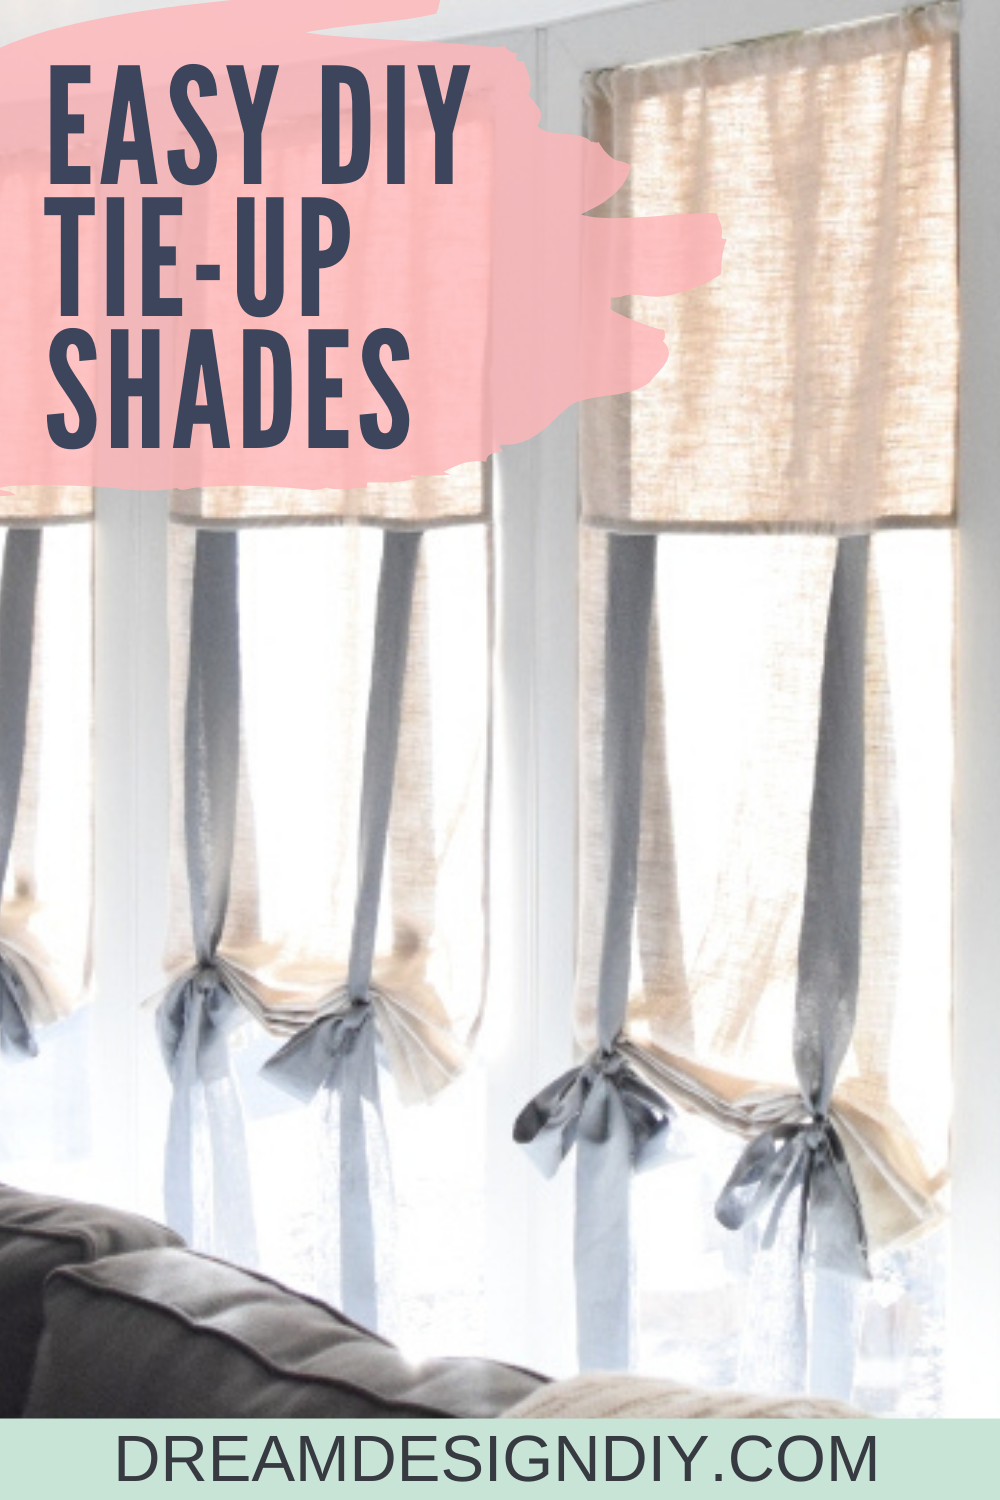 DIY TieUp Curtains Buying readymade window treatments can be expensive Make these DIY tie up shades and custom make them to fit any window These shades are easy to make a...